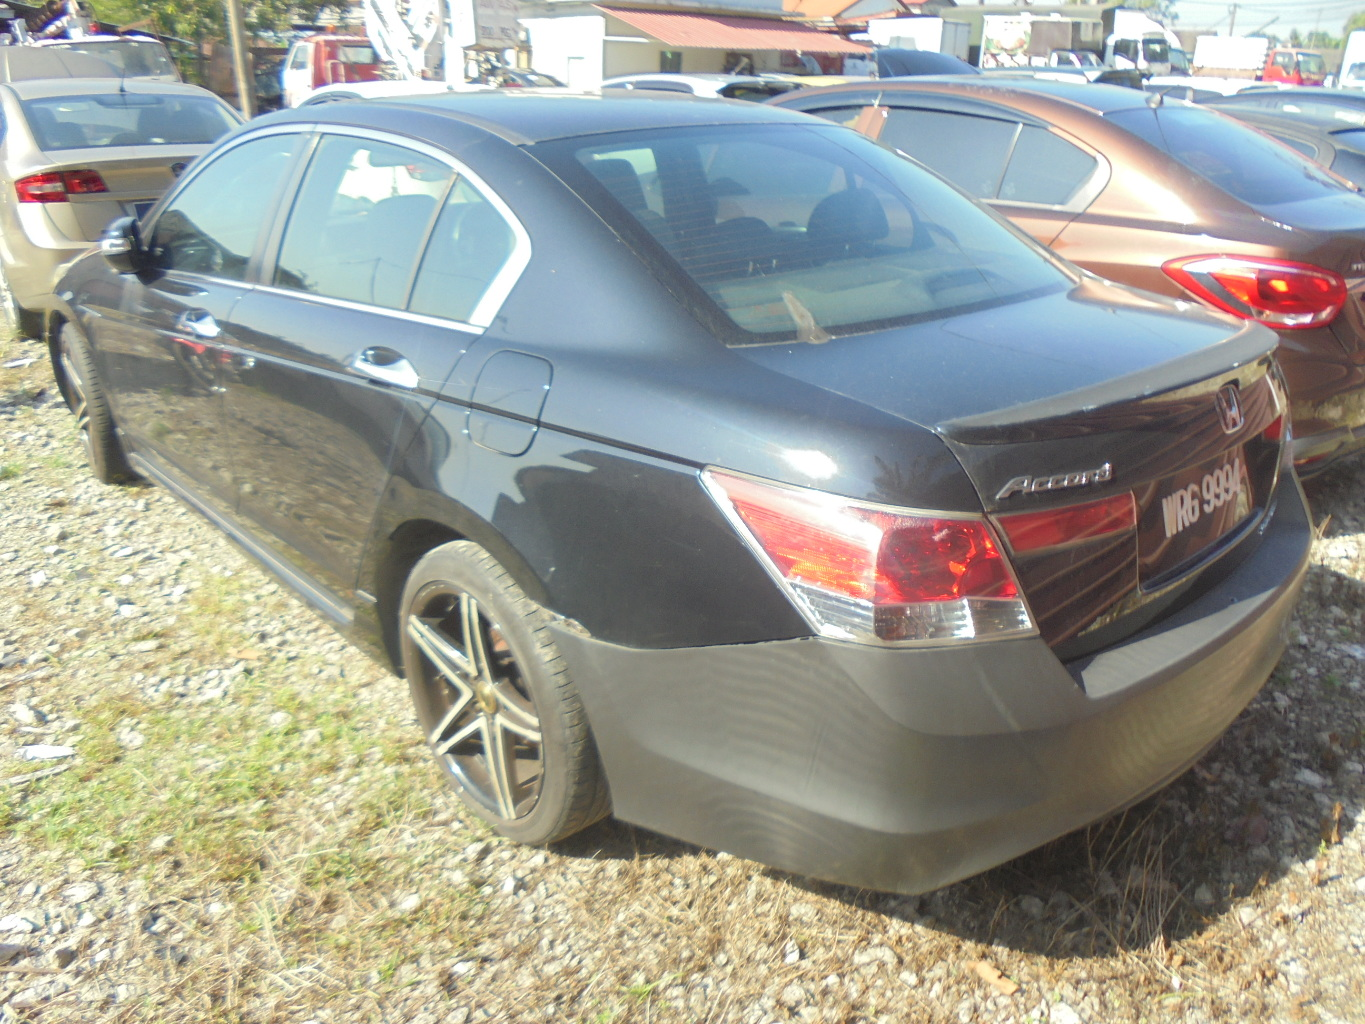 HONDA ACCORD 2.4 | Lelongtips.com.my